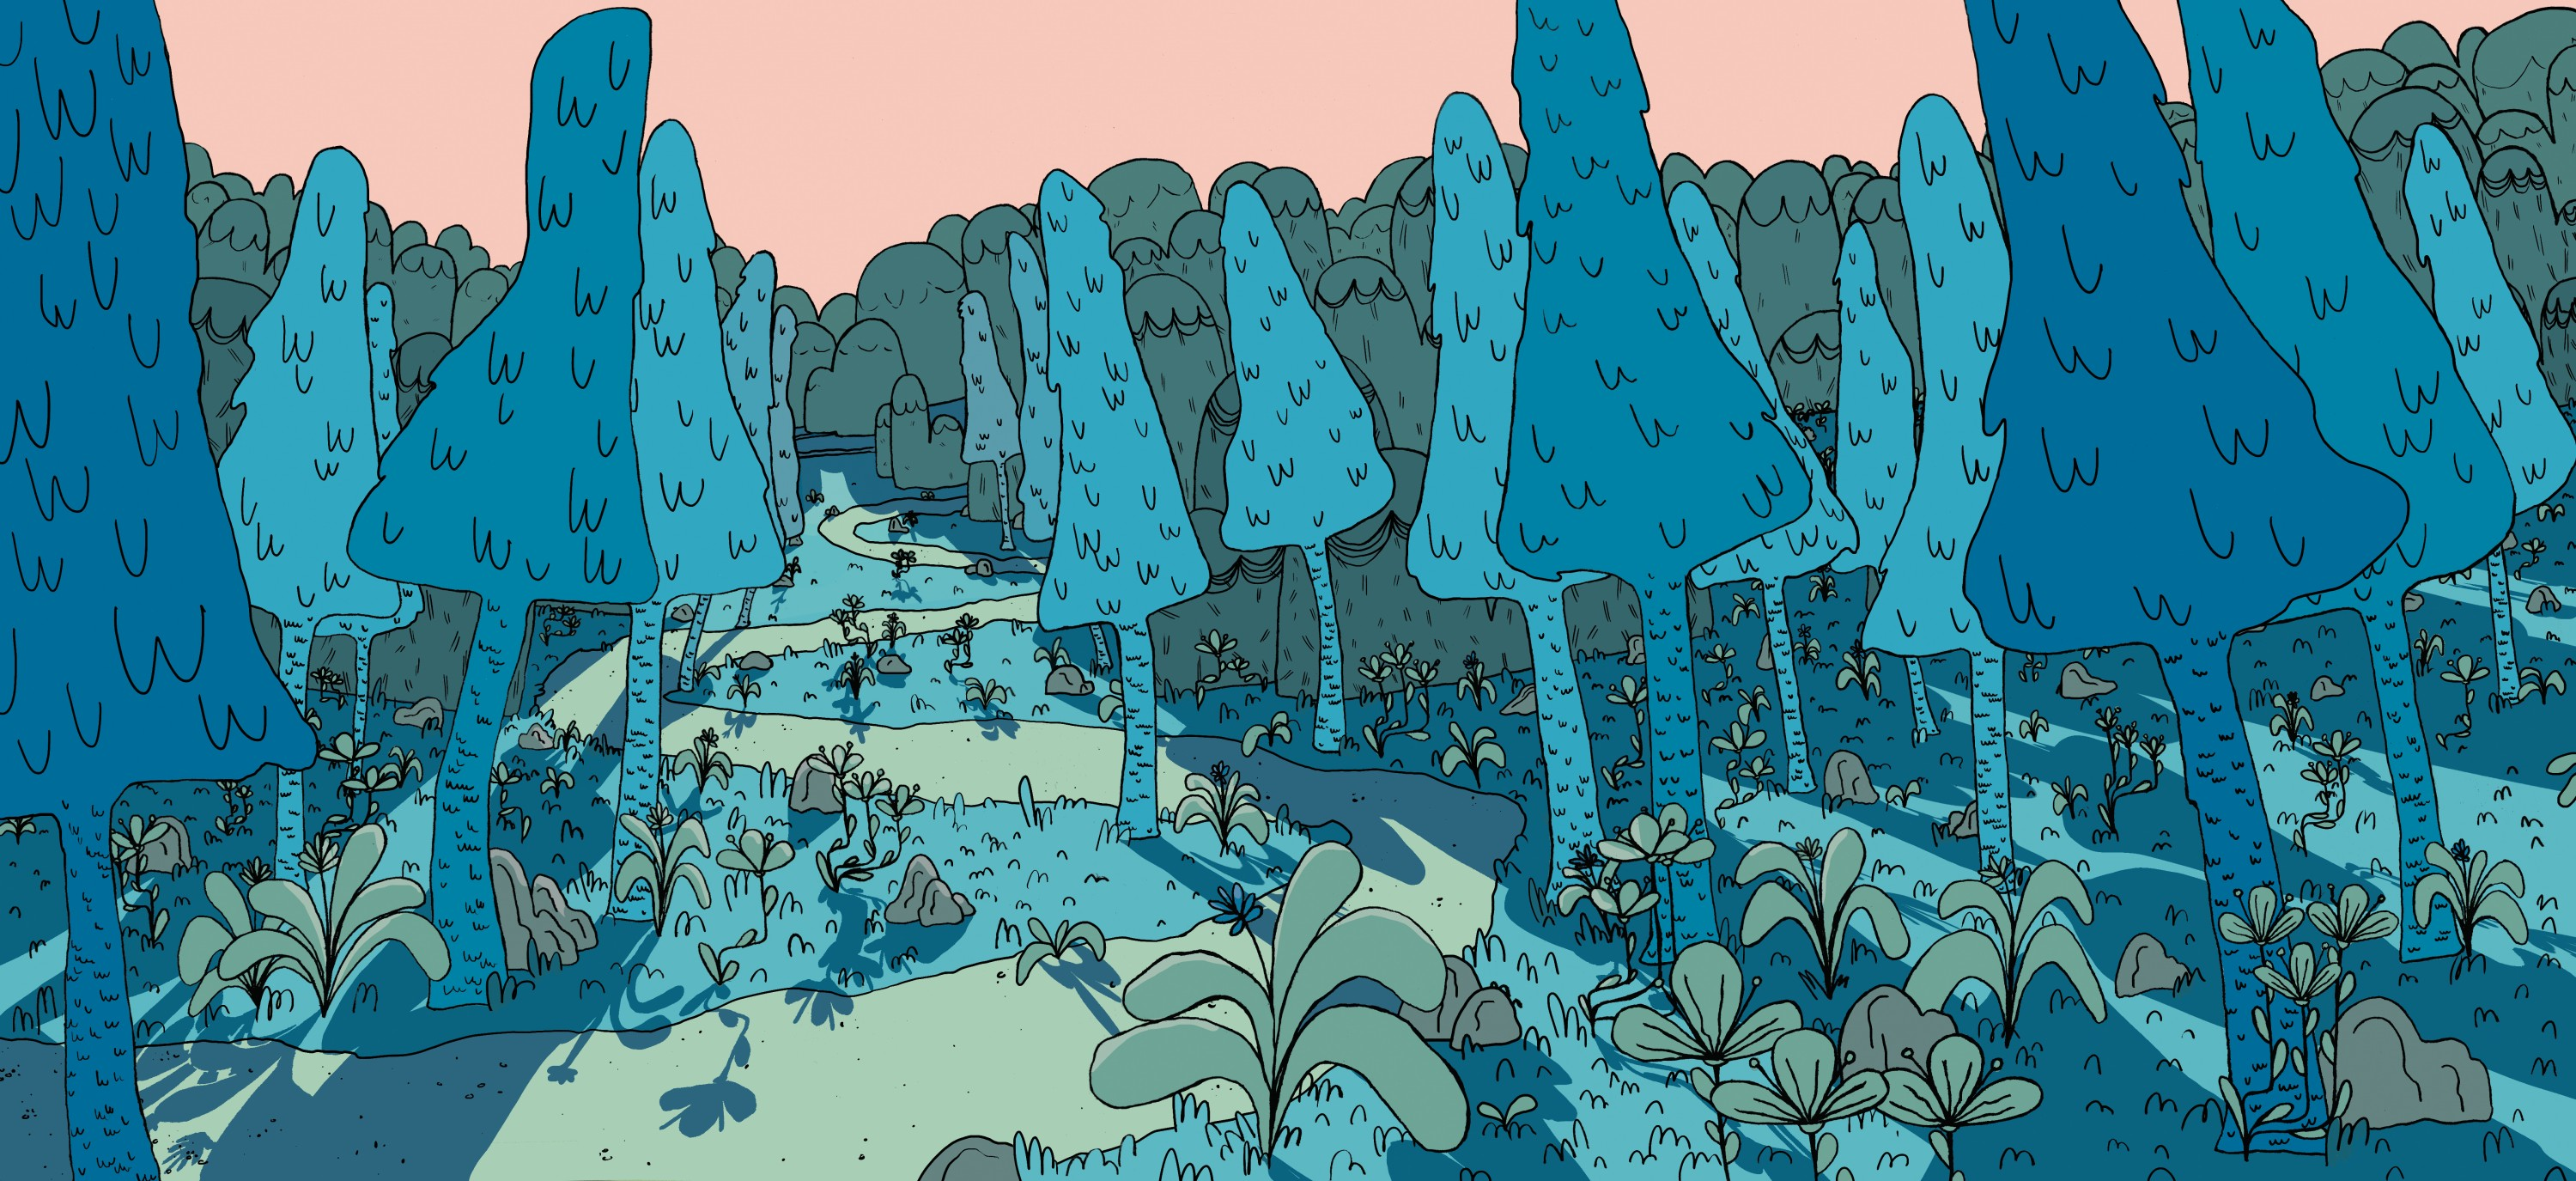 Visual development piece showing a background full of trees, short foliage, rocks, and mountains in the distance. The trees are a rounded triangle shape with tall thin trunks and a winding path runs through the middle of the piece all the way to the mount